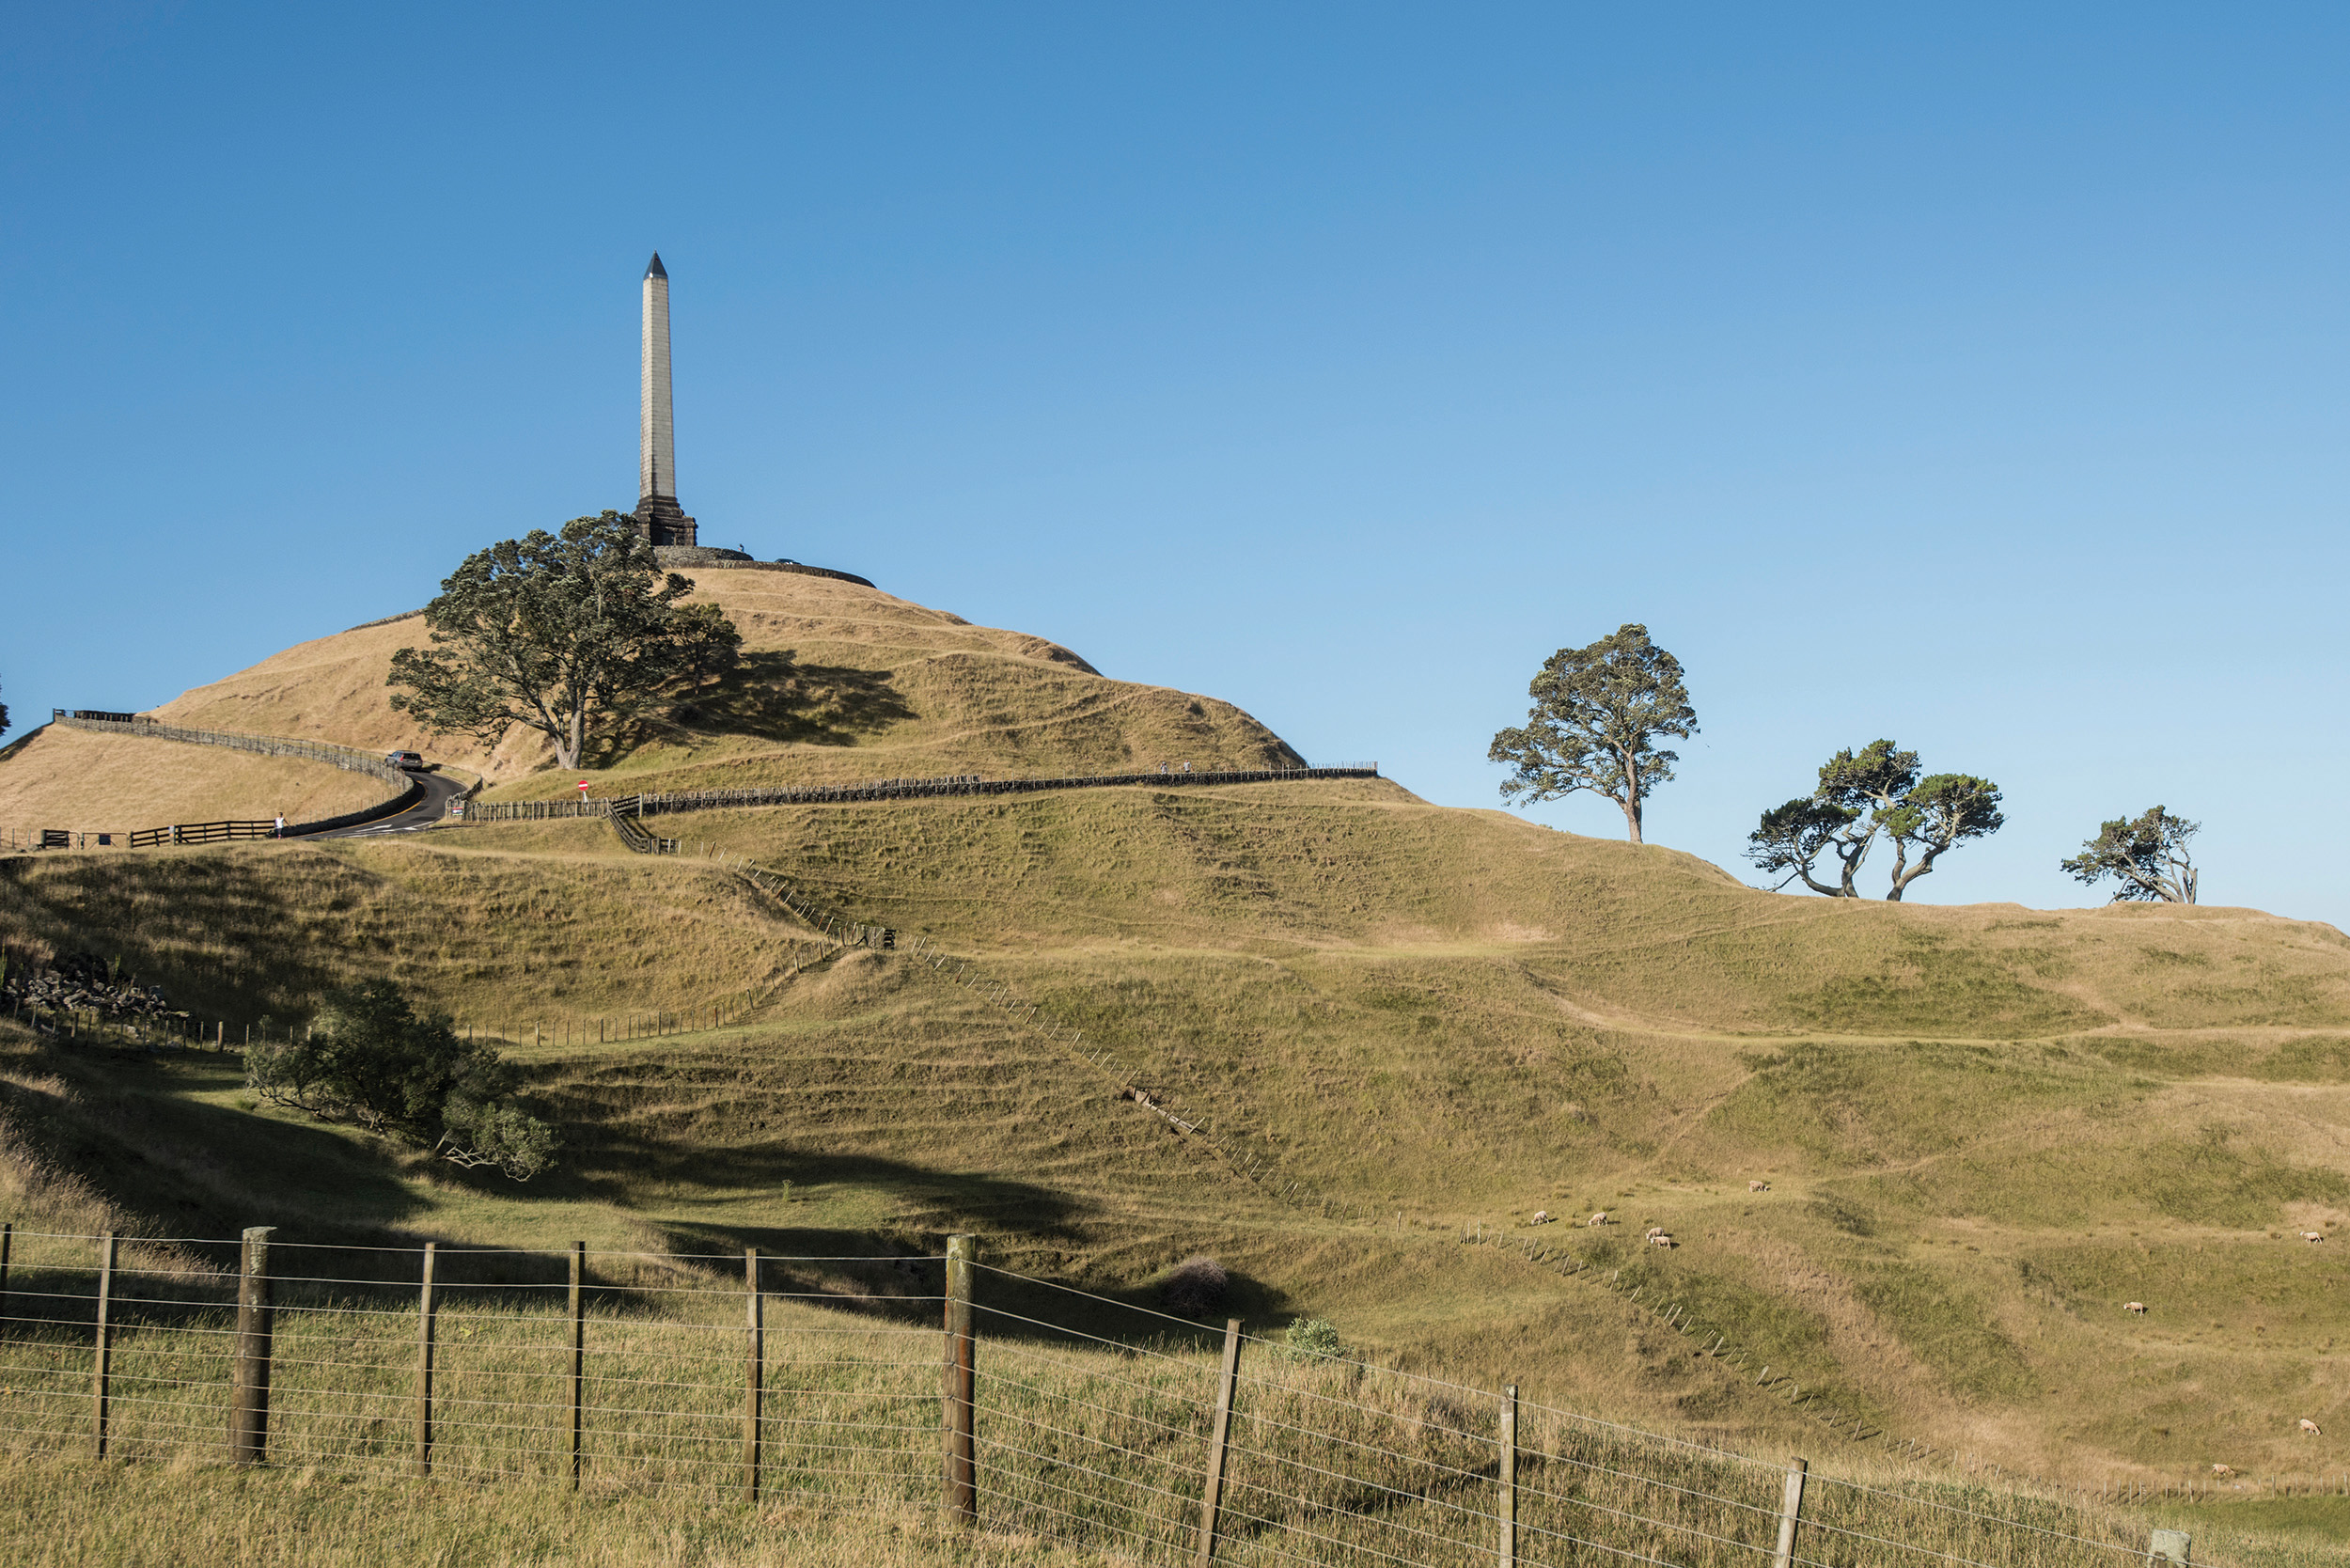 THE ICONIC ONE TREE HILL AND  CORNWALL PARK  ARE NEARBY, INCLUDING THE  CORNWALL PARK CAFE  AND  STARDOME OBSERVATORY .